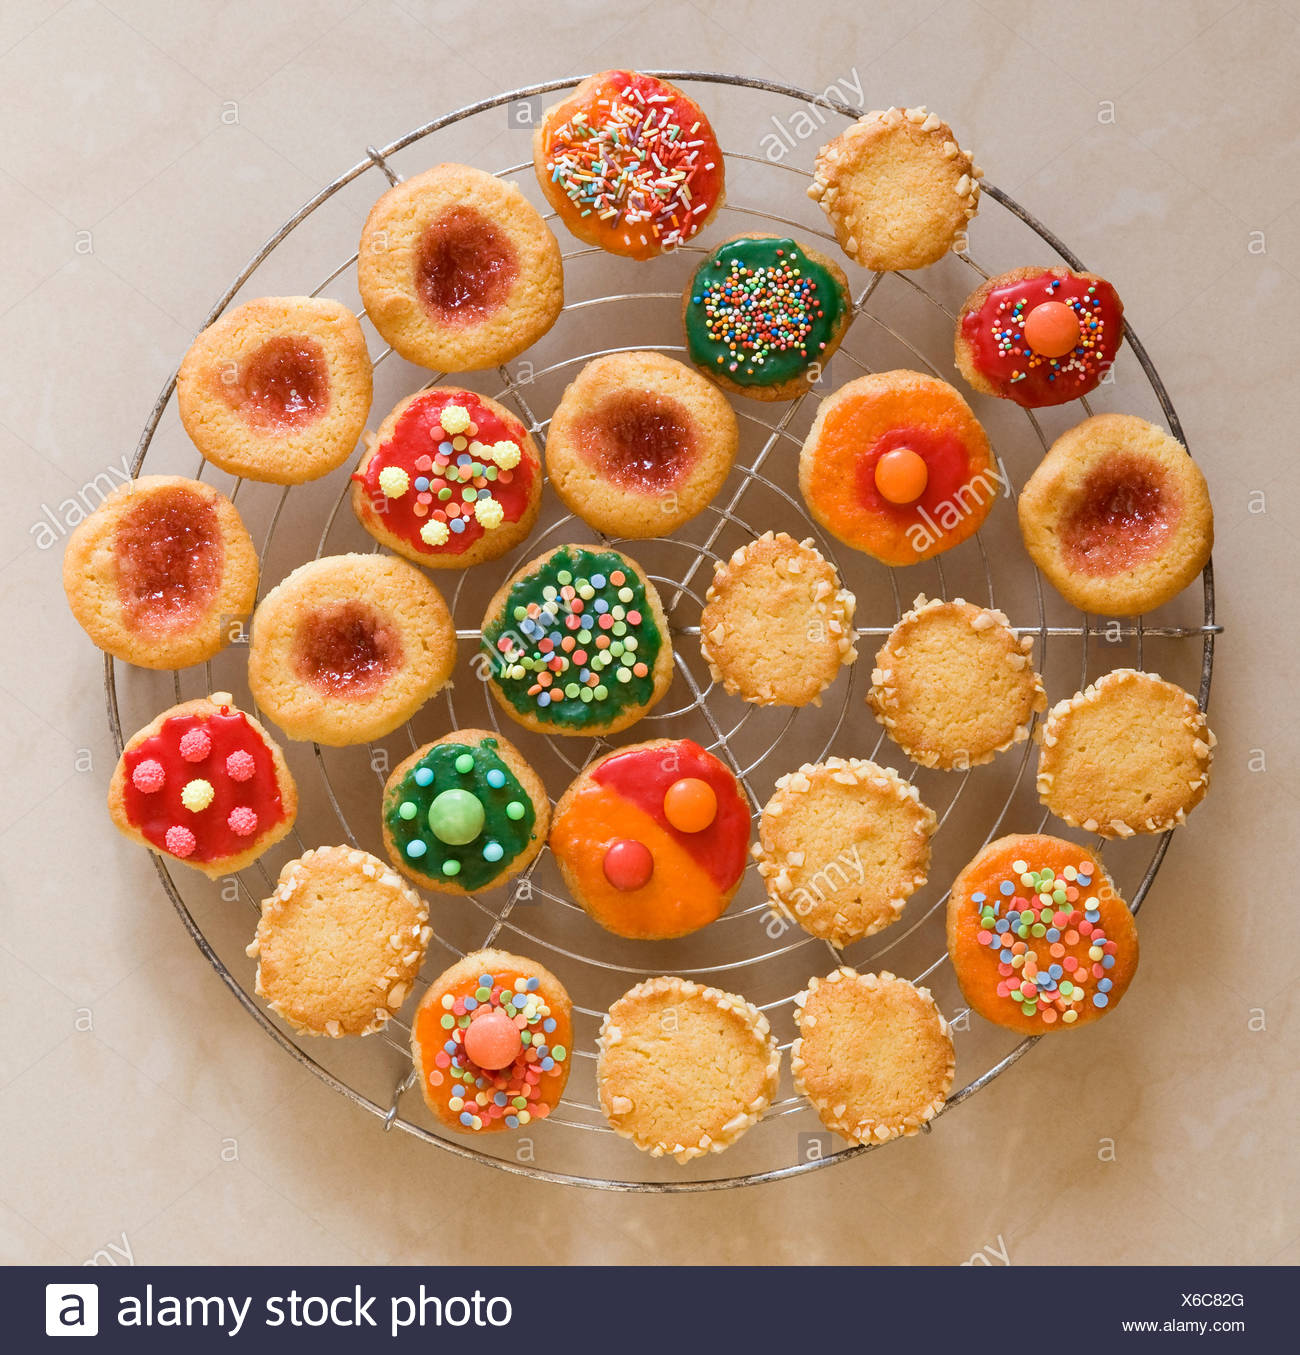 Round Colourful Christmas Cookies Stock Photo 279323592 Alamy